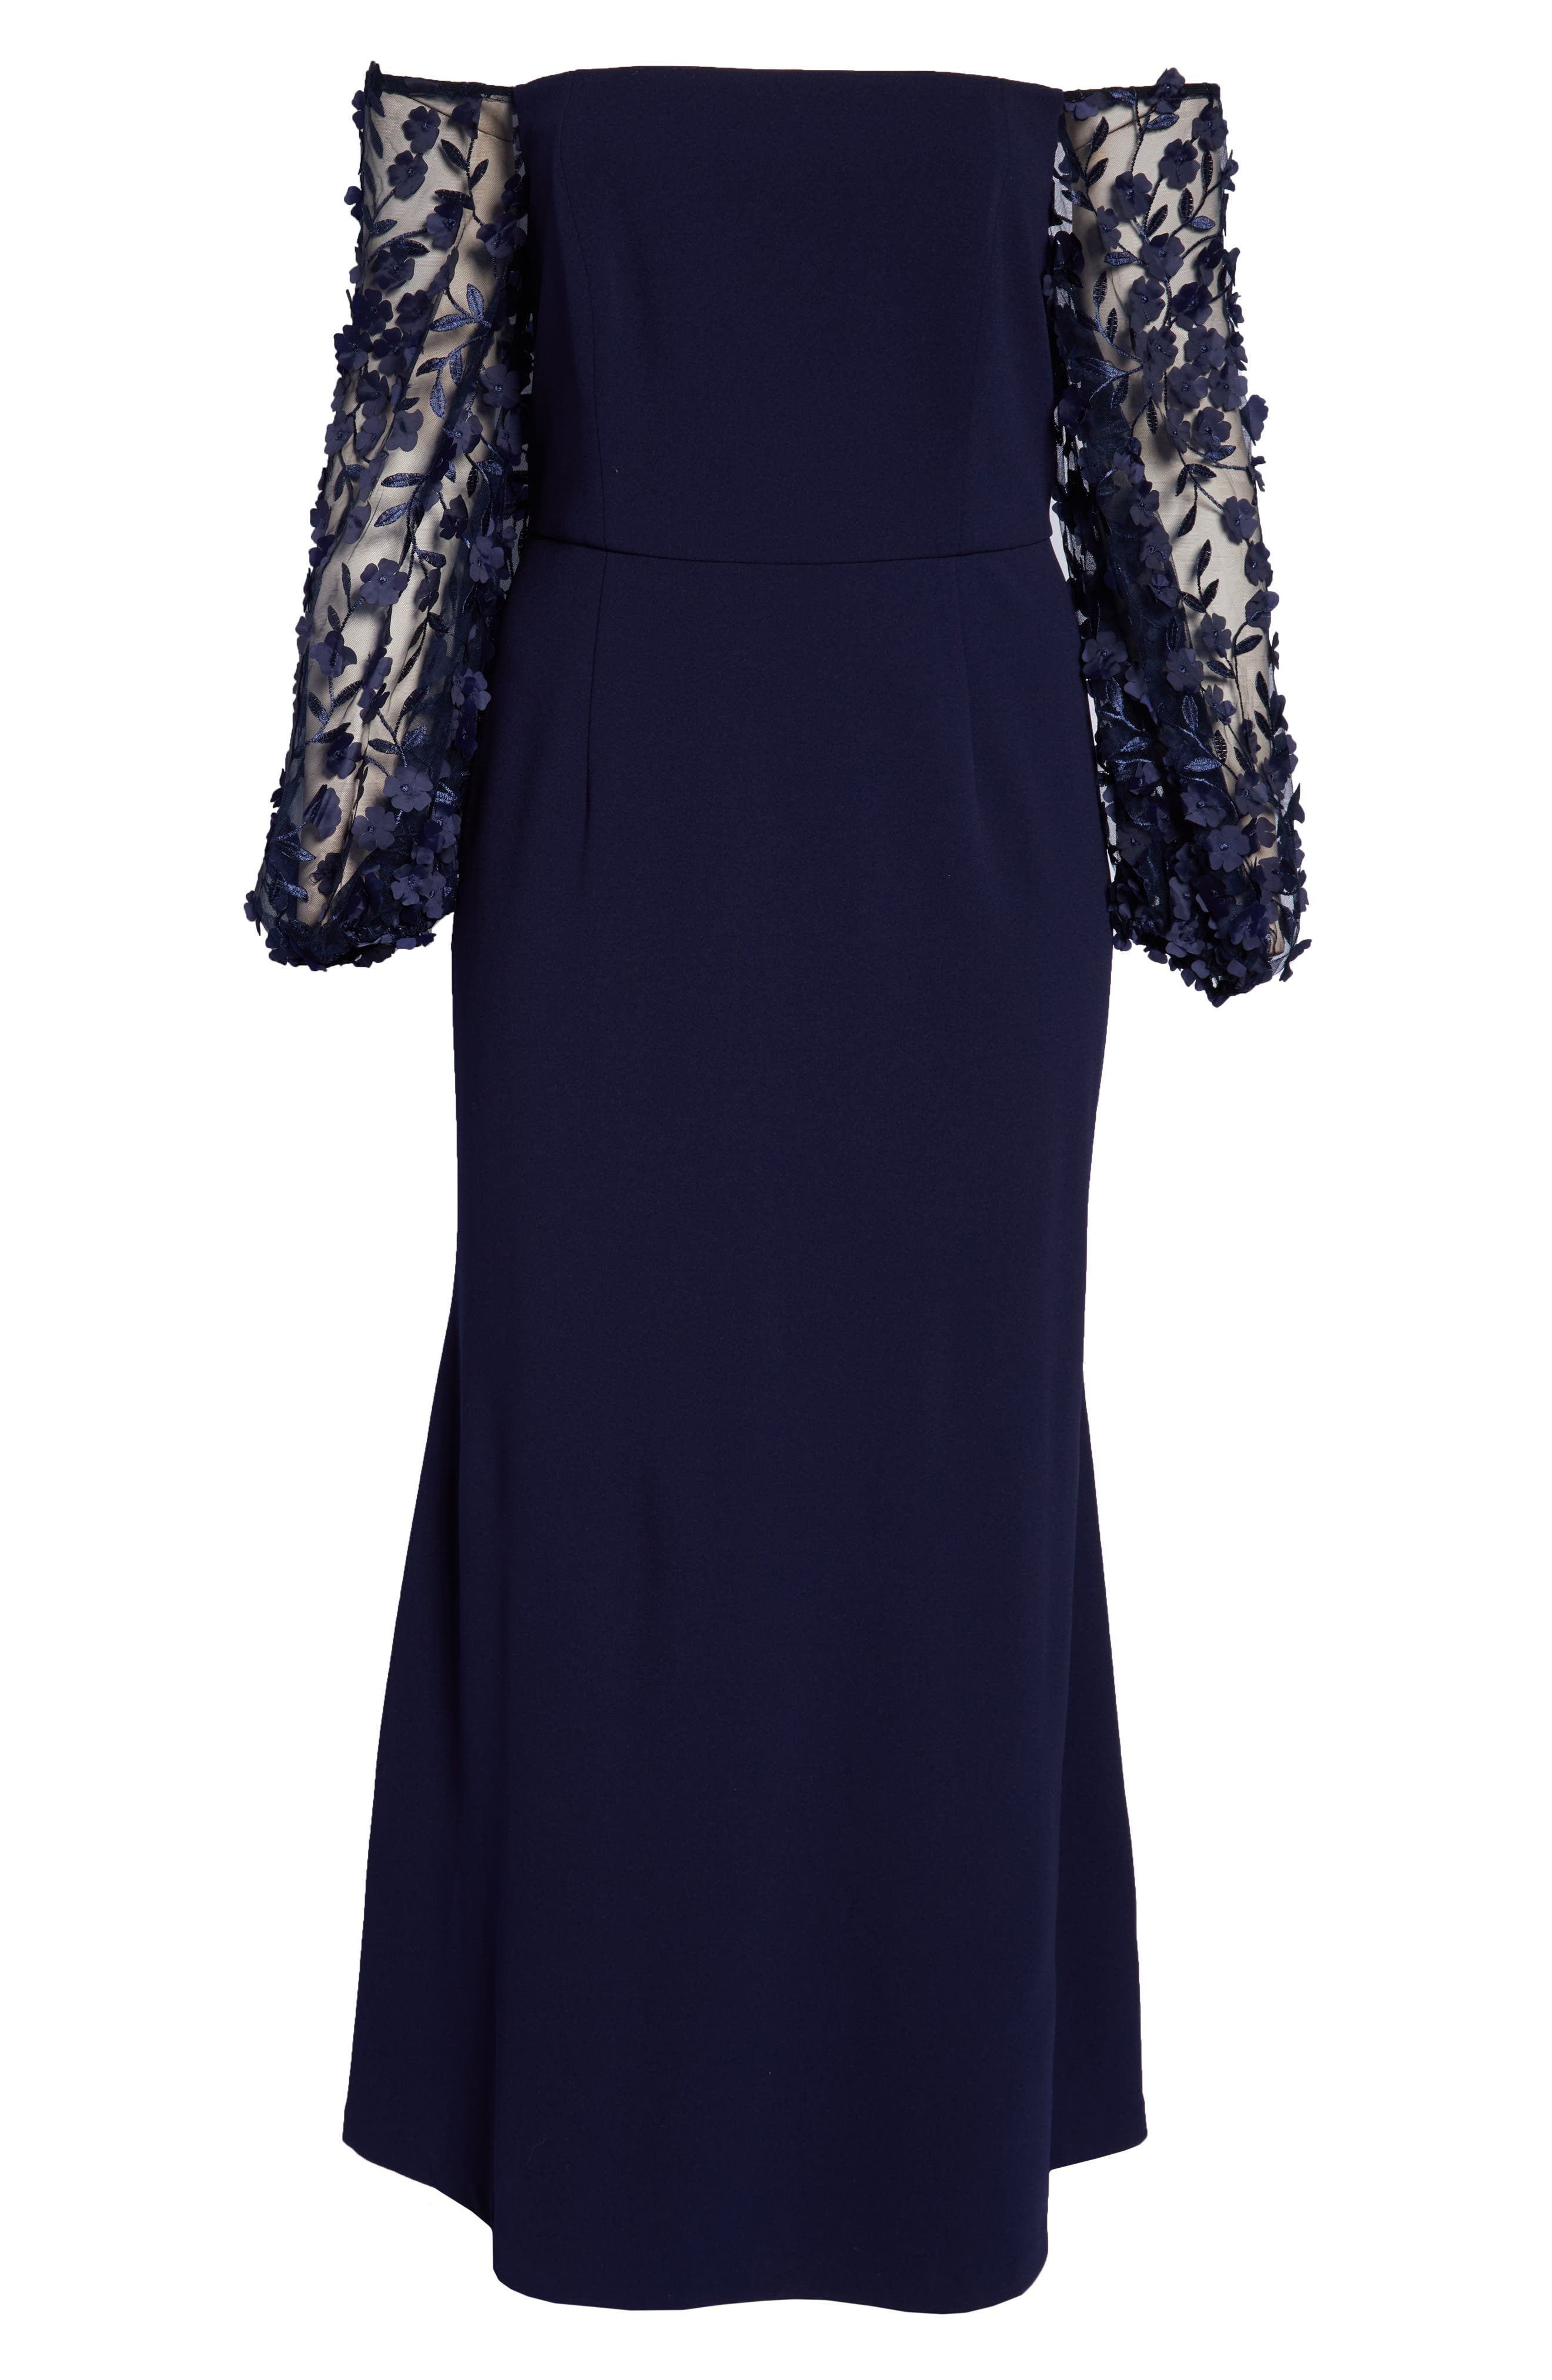 ELIZA J, Off the Shoulder 3D Floral Sleeve Scuba Crepe Evening Dress, Alternate thumbnail 7, color, NAVY